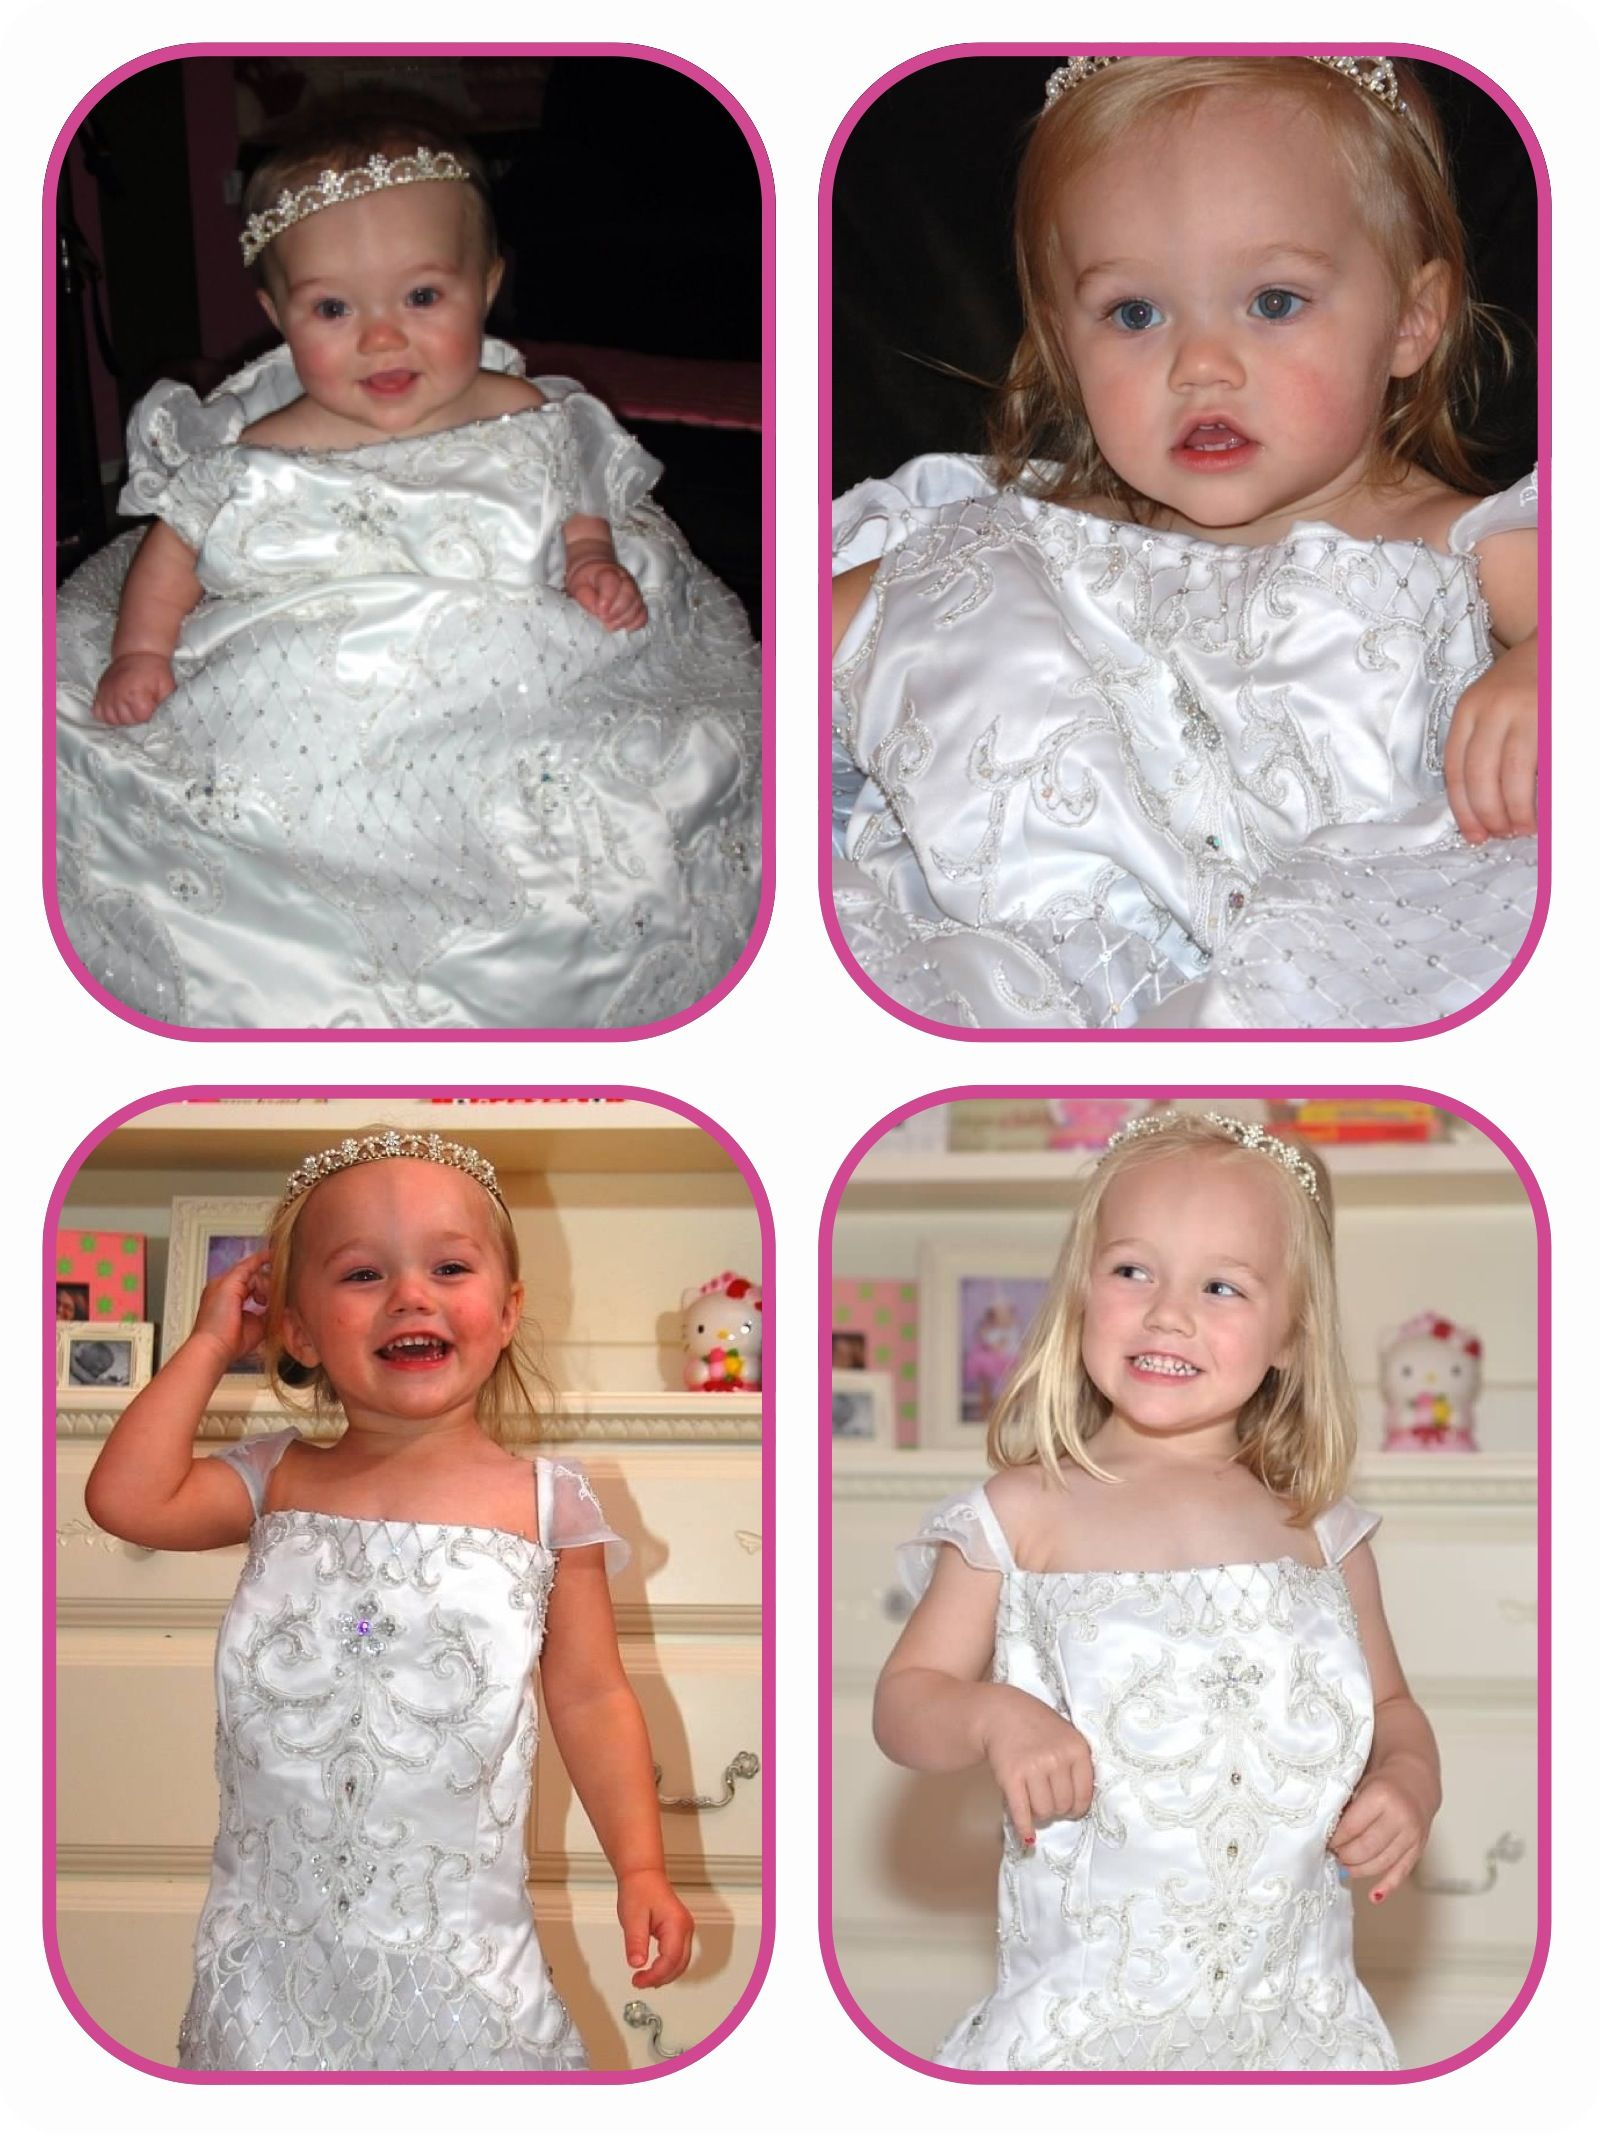 Awesome Annual tradition - each year on our anniversary our daughter wears my wedding dress!